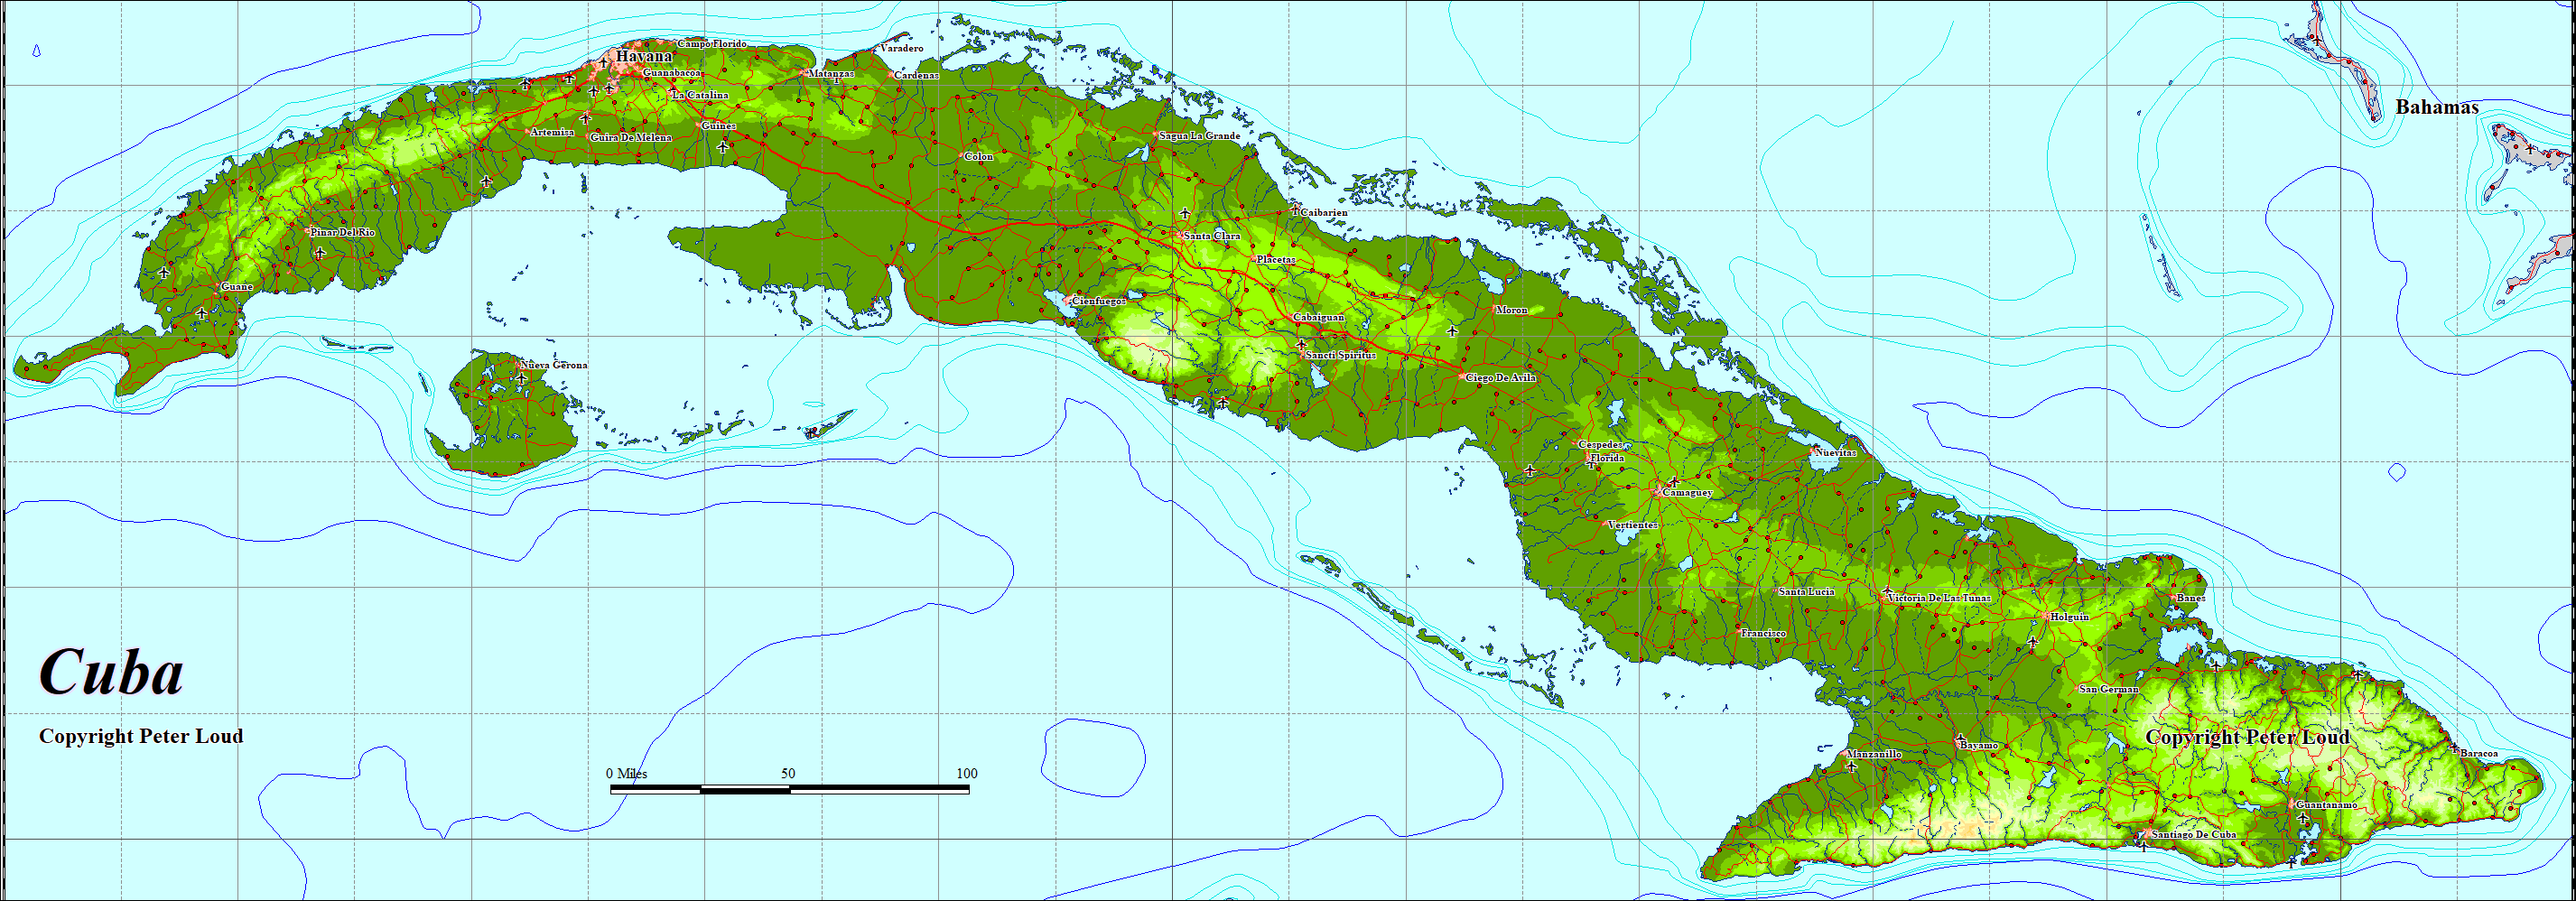 Maps of cuba peter loud map of cuba gumiabroncs Gallery